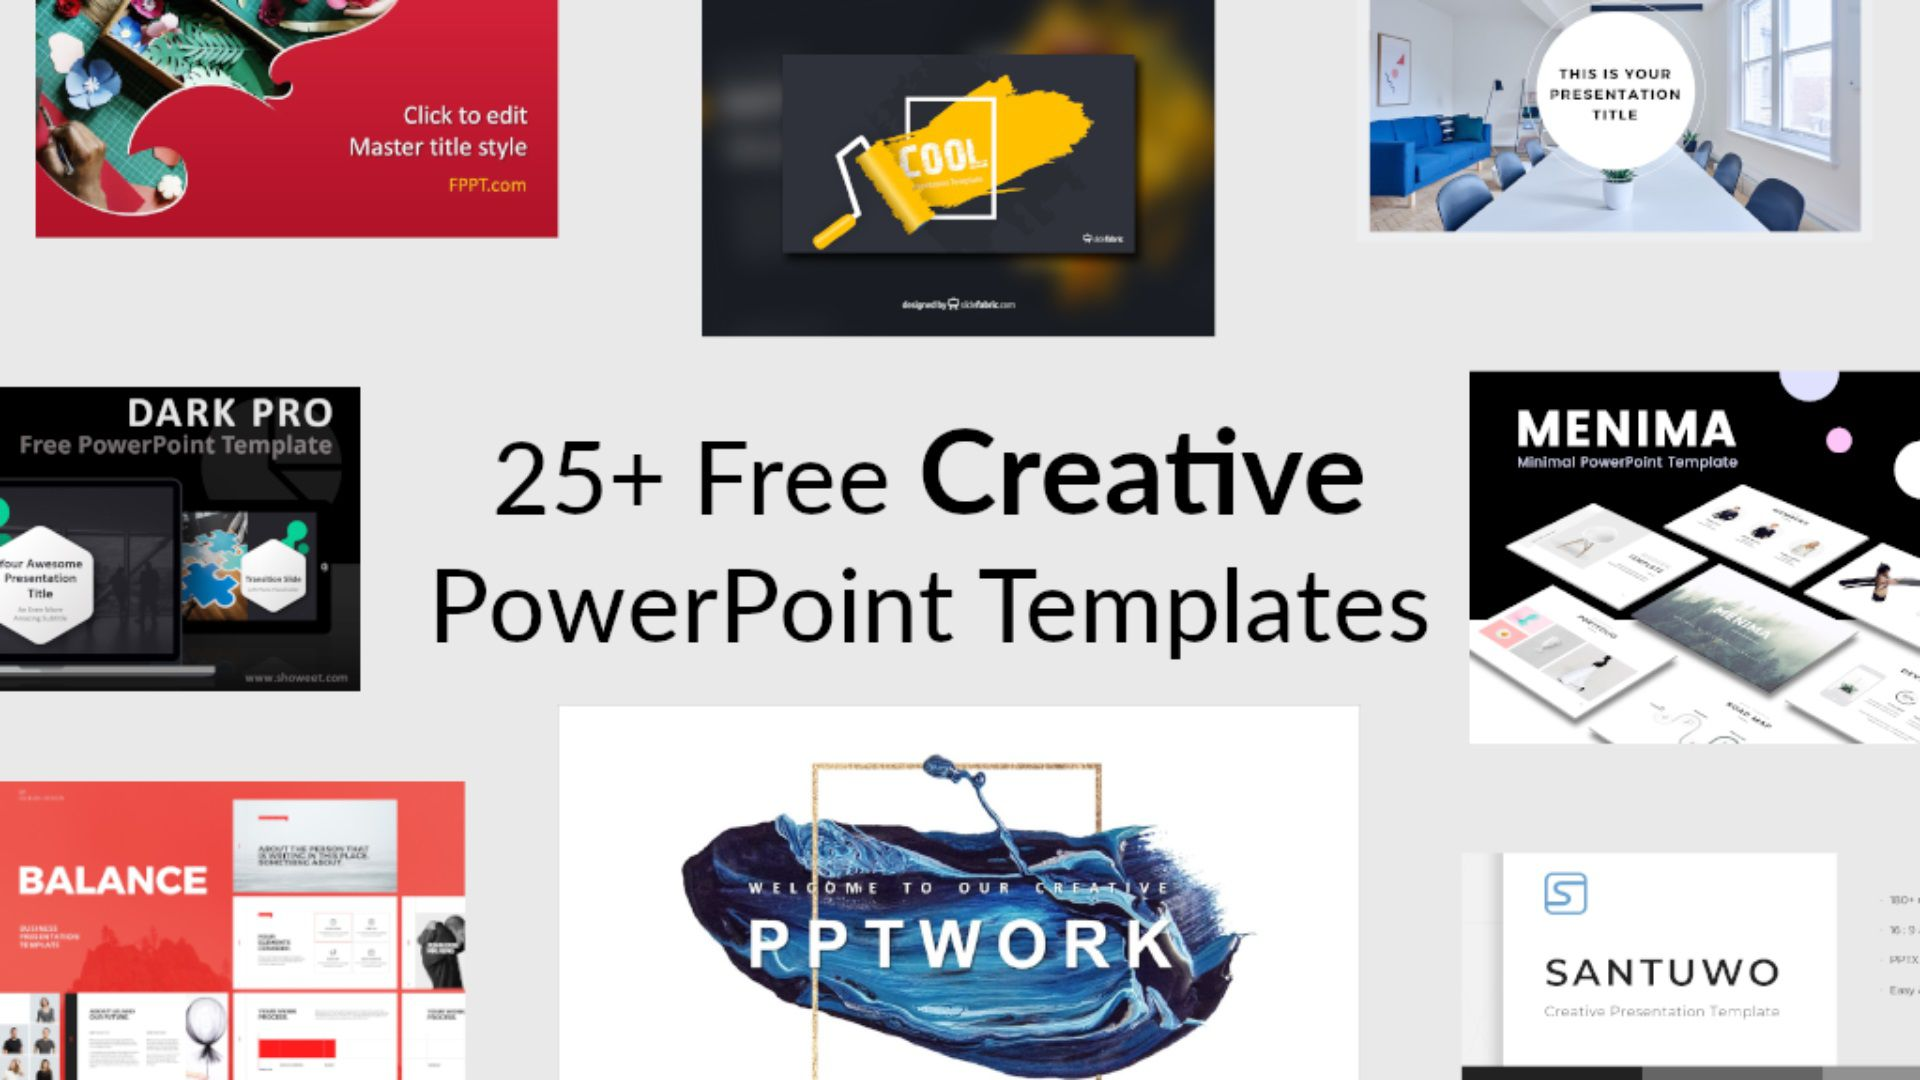 001 Shocking Free Powerpoint Presentation Template Design  Templates 22 Slide For The Perfect Busines Strategy Download EngineeringFull